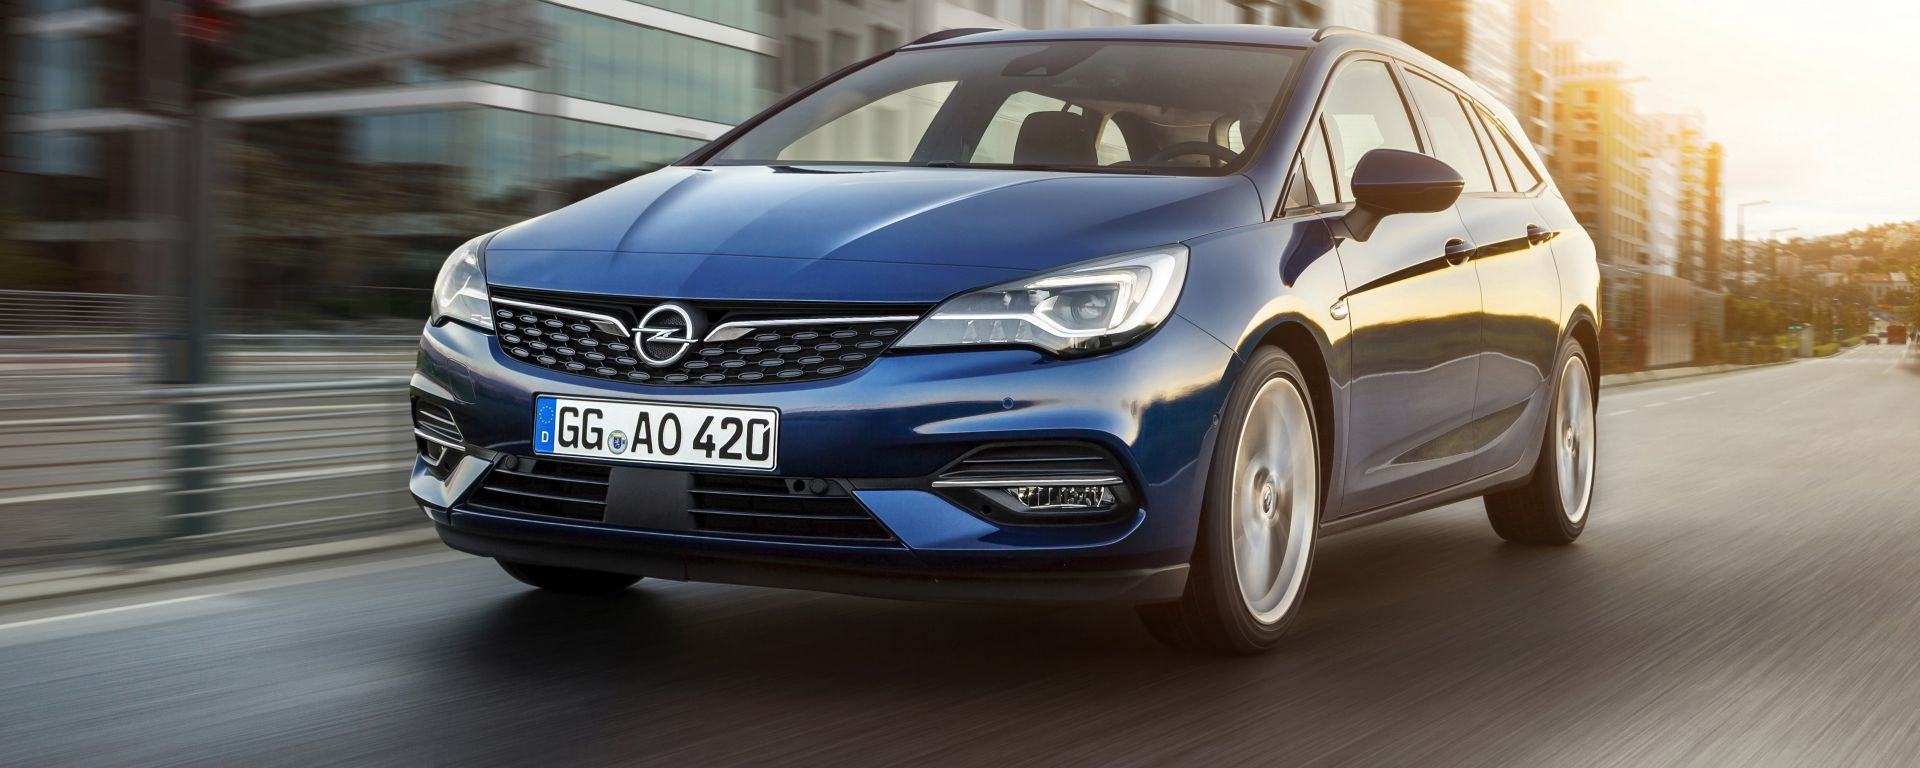 Opel Astra 2019: uguale fuori si rinnova sottopelle